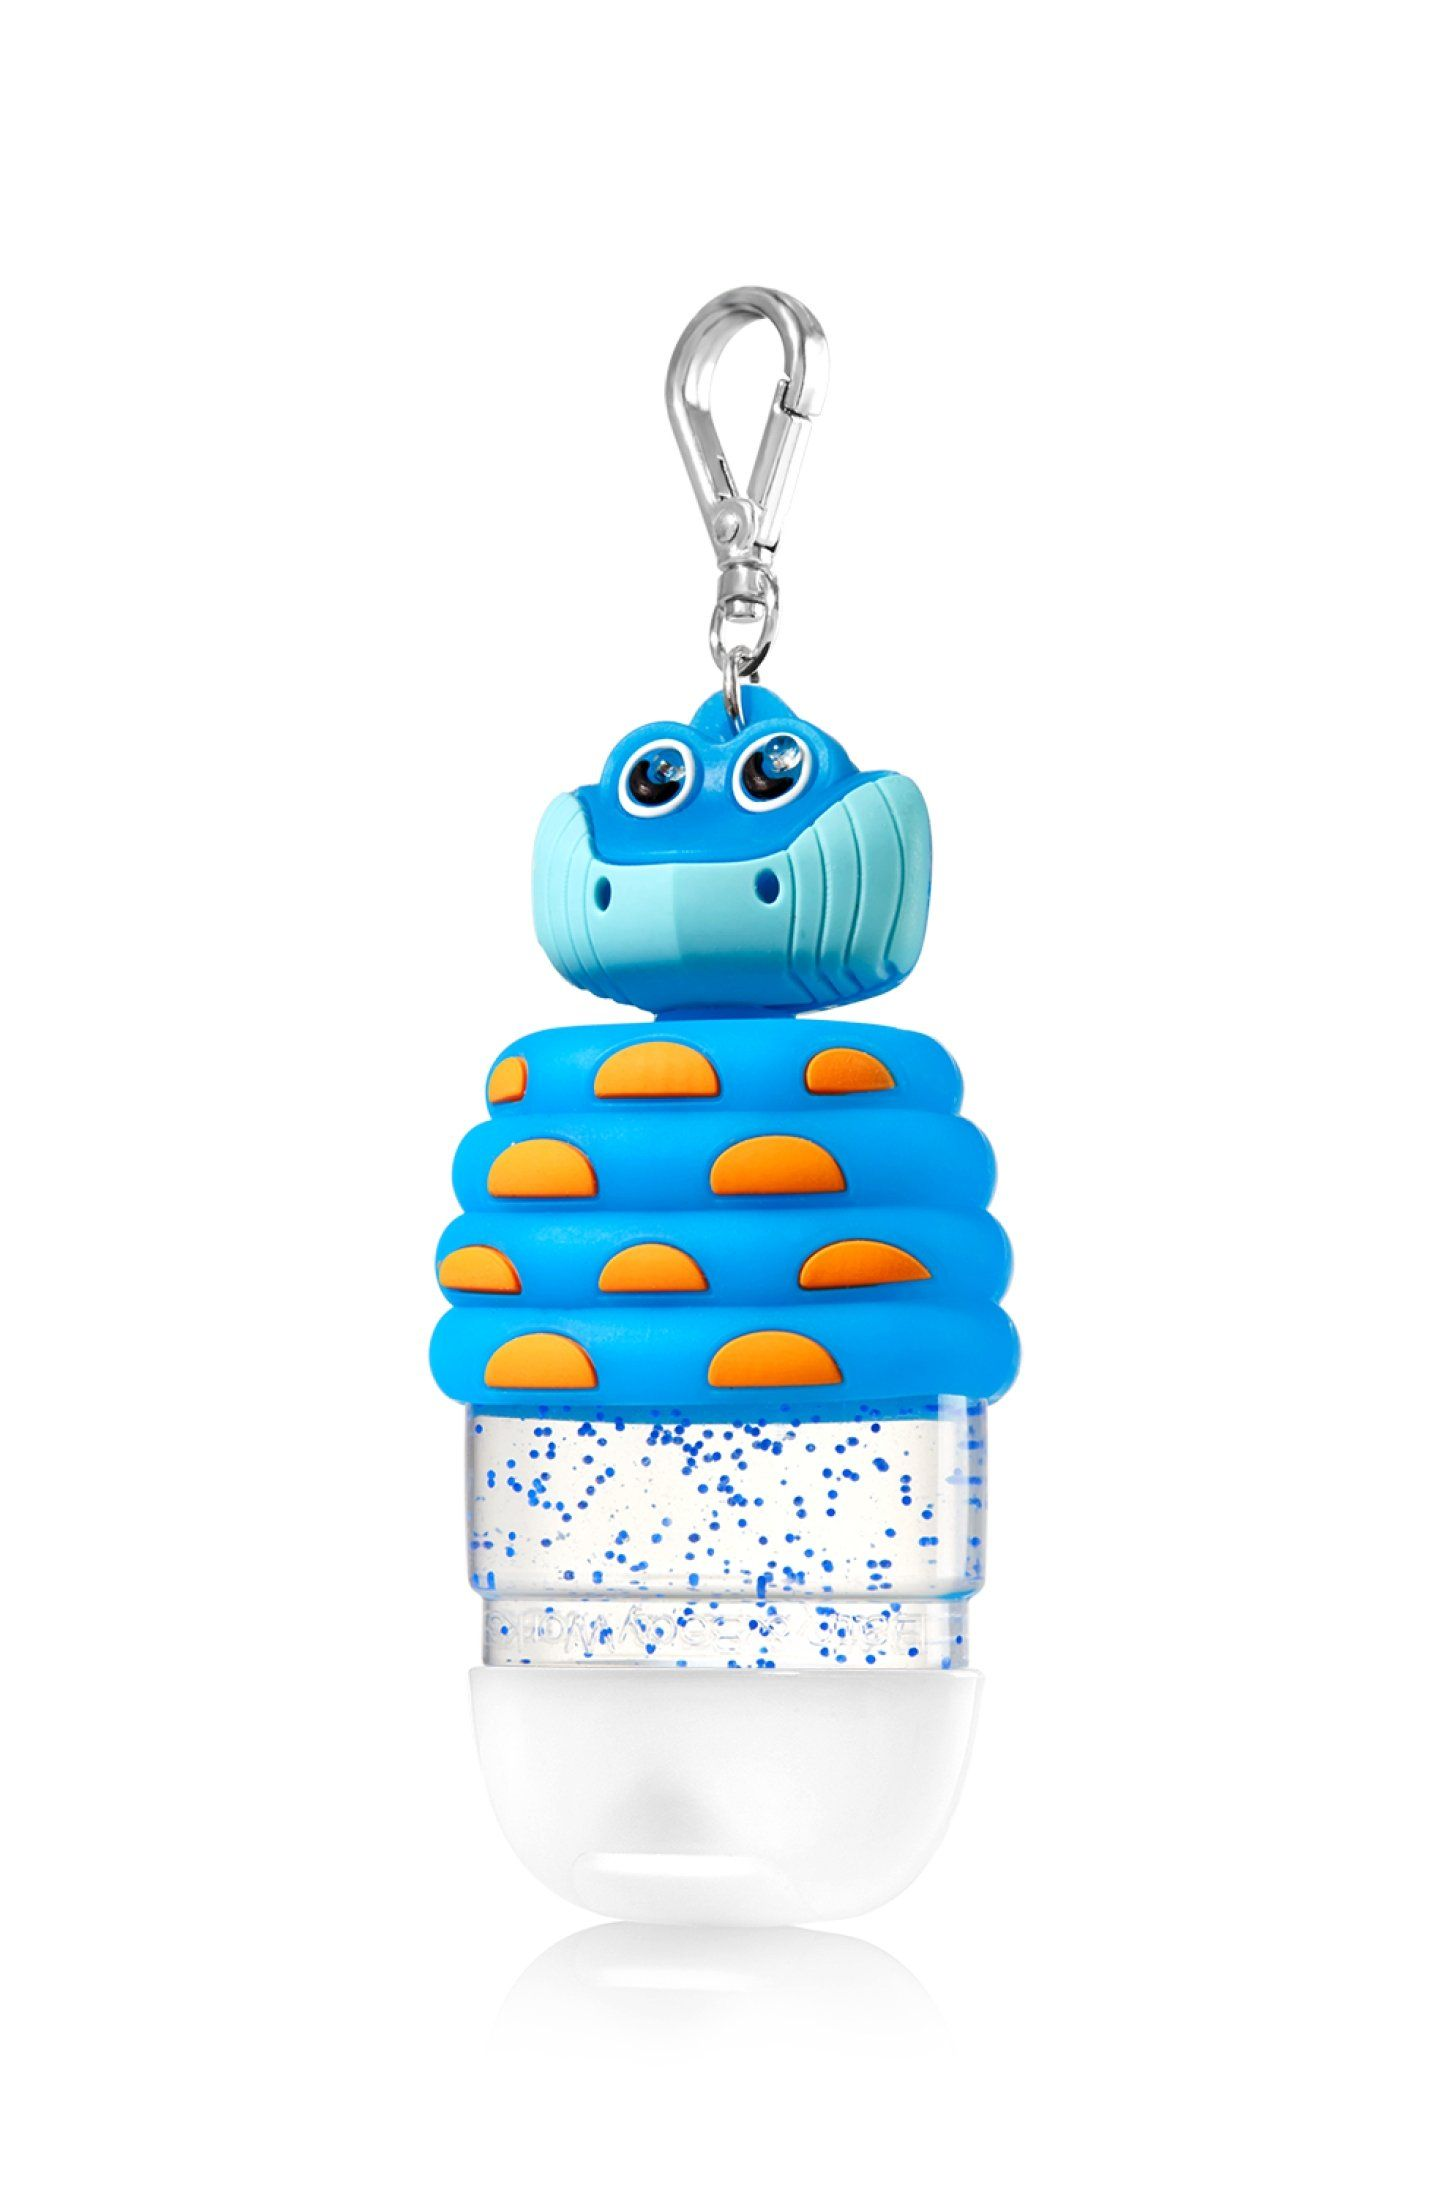 Bath Body Works Snake Pocketbac Sanitizer Holder Sanitizer Is